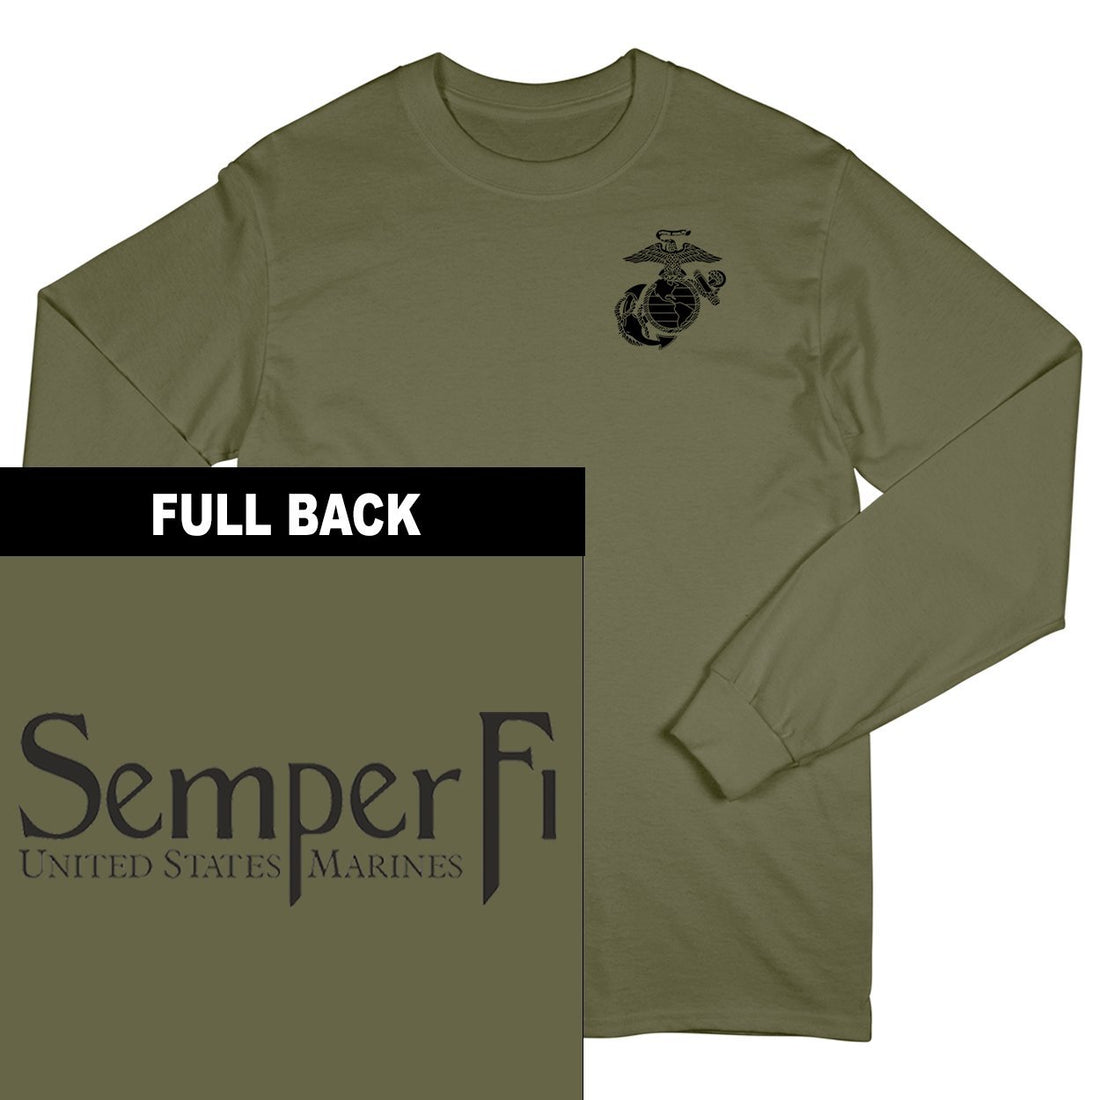 Semper Fi 2-Sided Long Sleeve T-Shirt - Marine Corps Direct